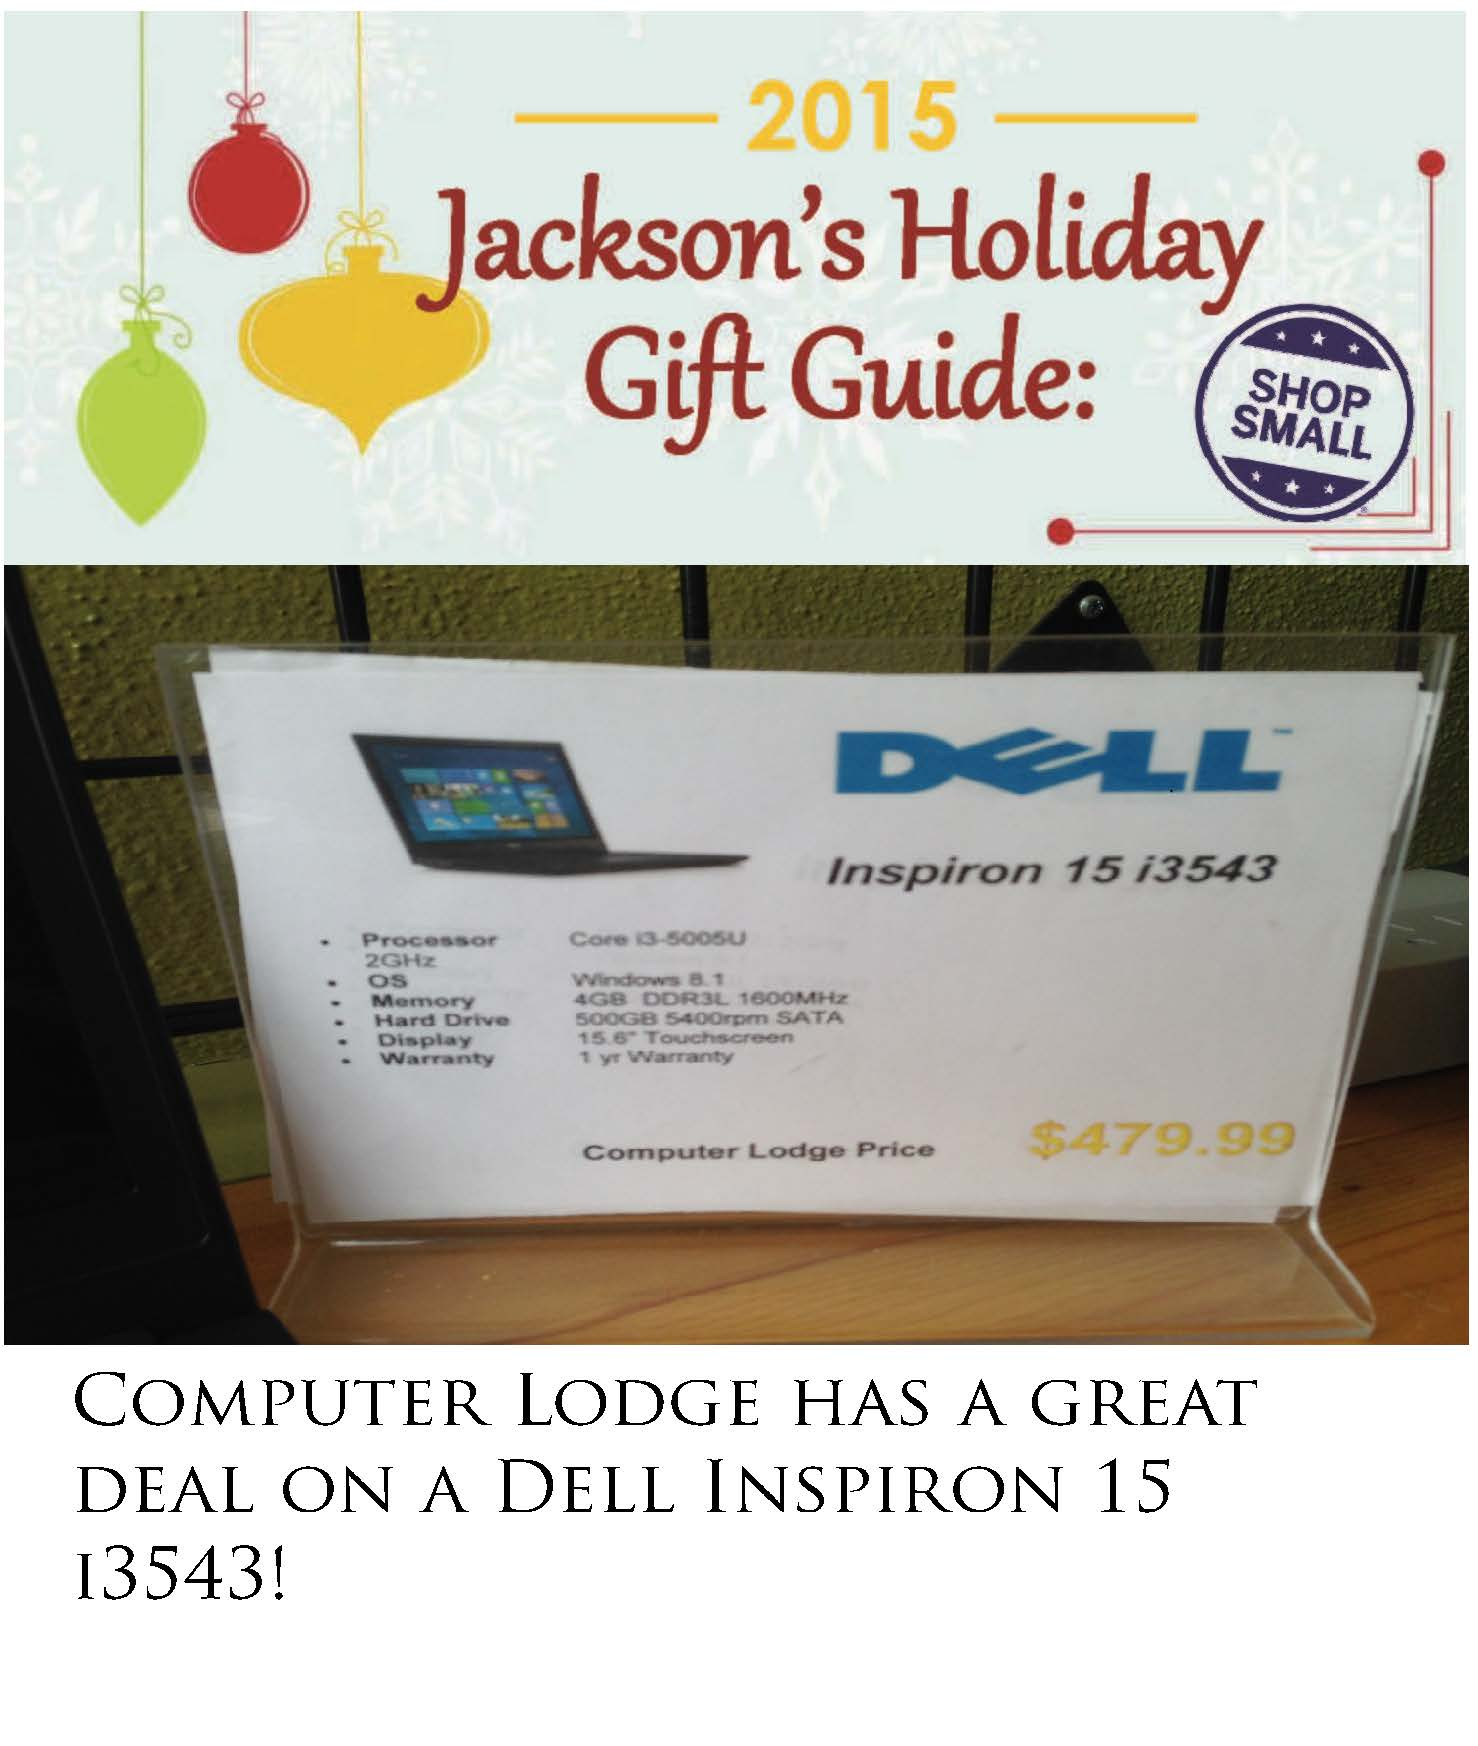 Gift_Guide_Computer_lodge_1.JPG